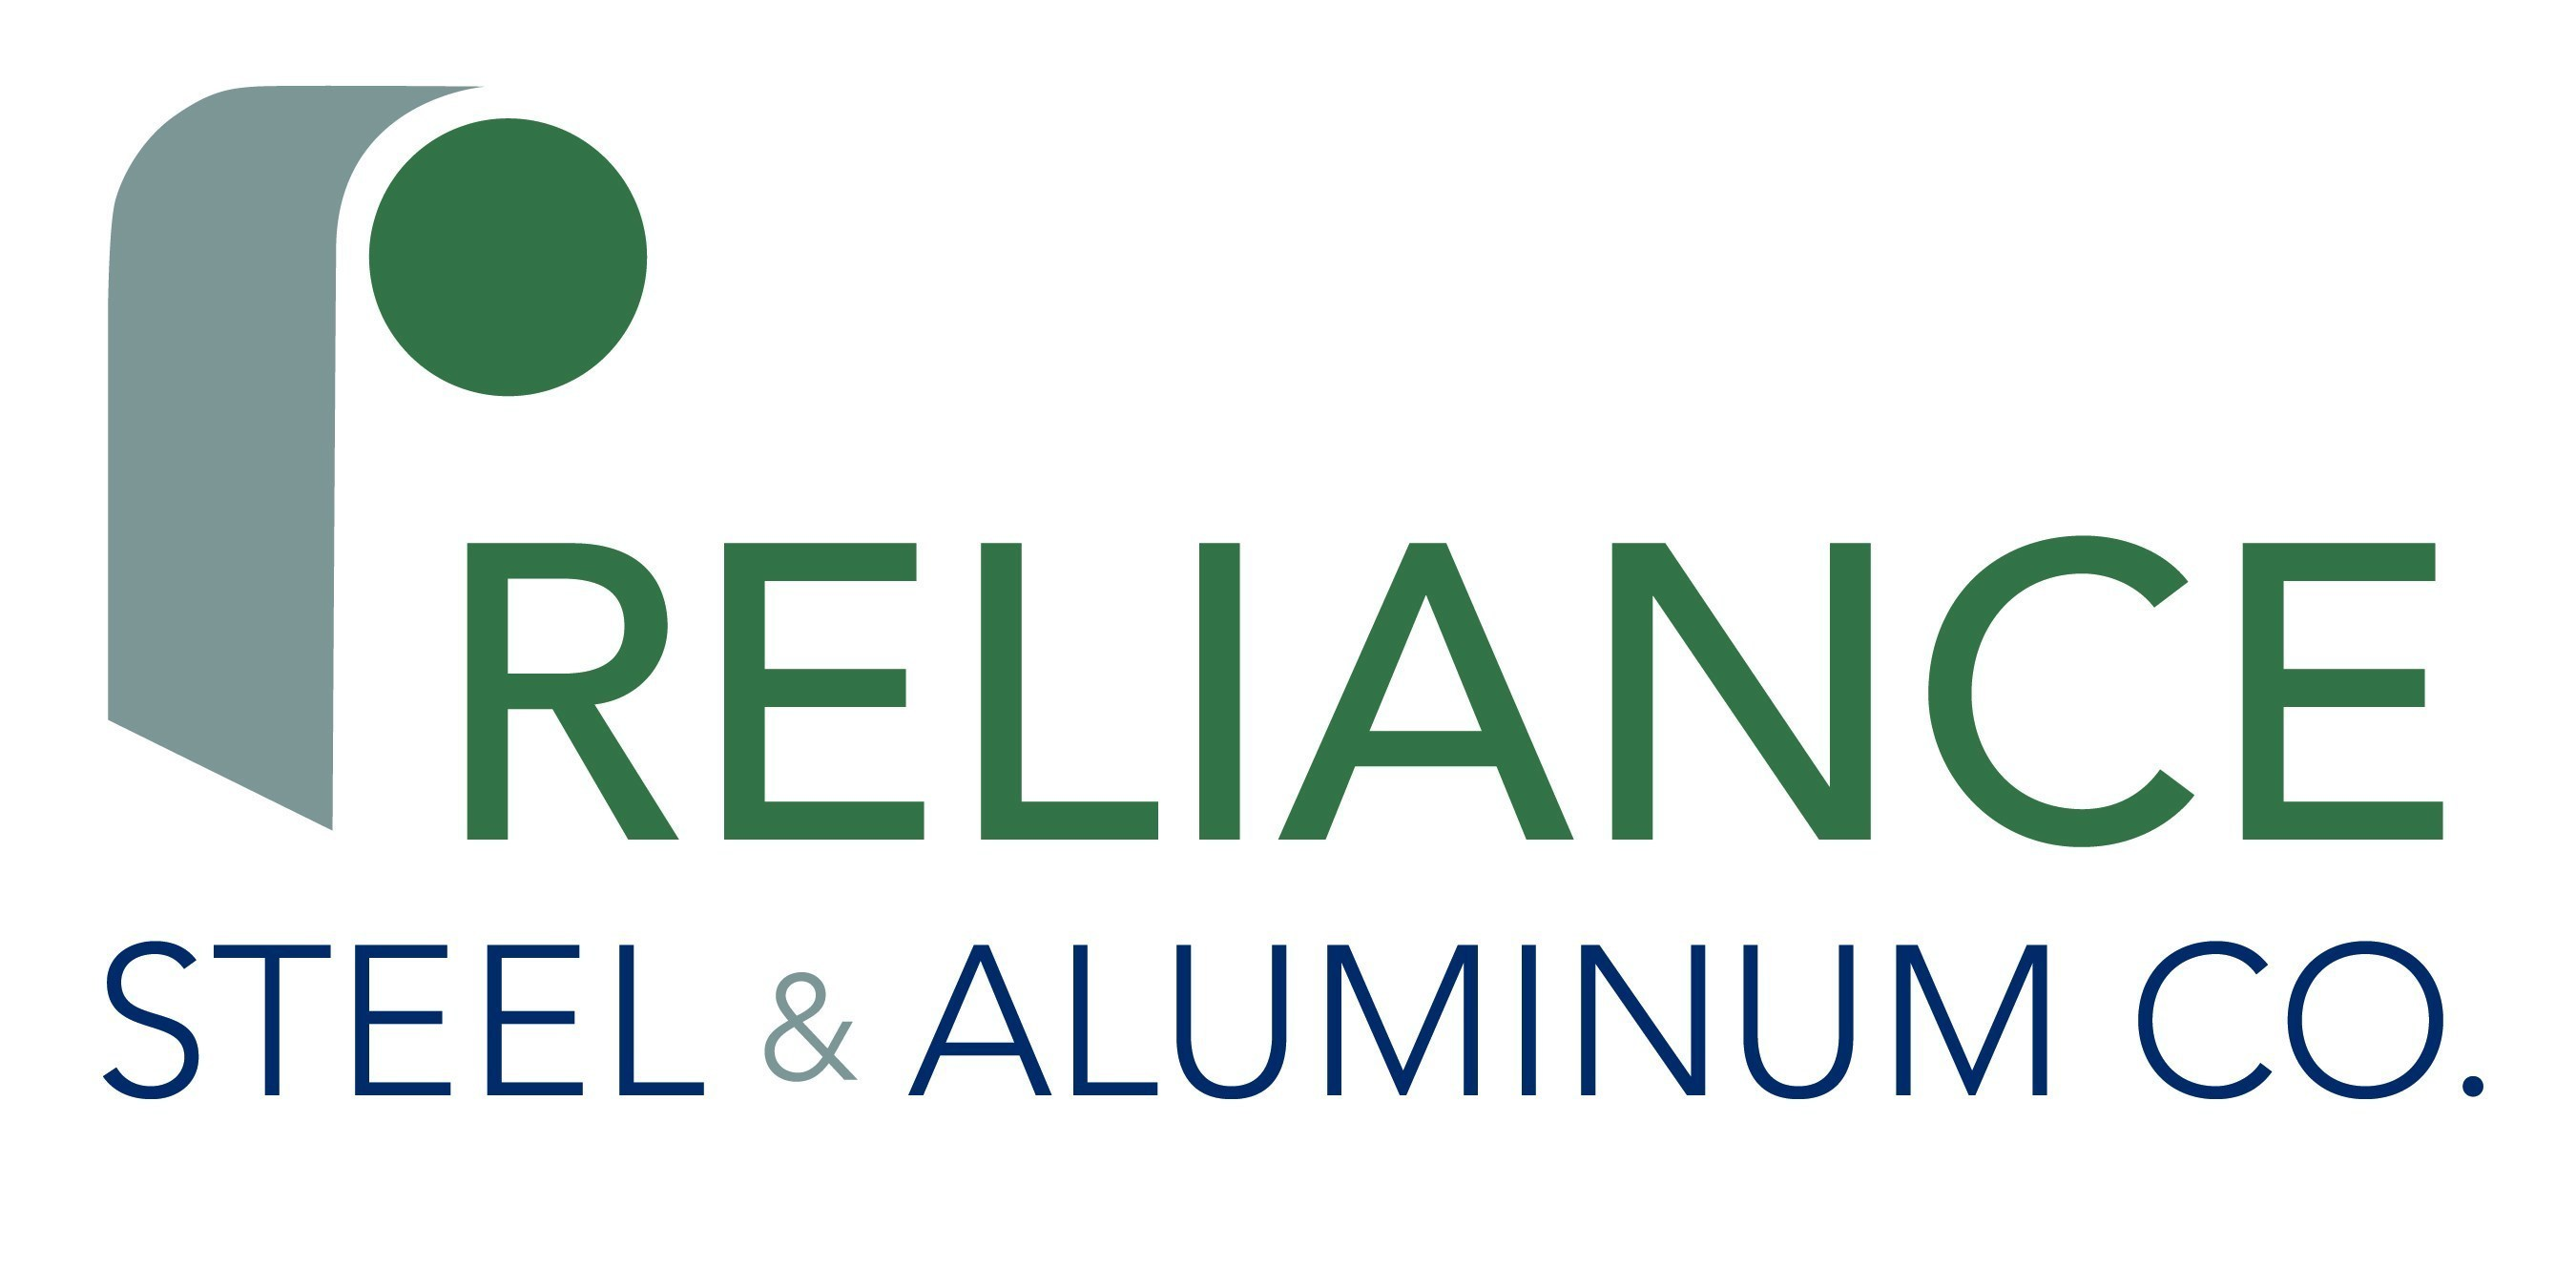 Reliance Steel & Aluminum Co. logo.